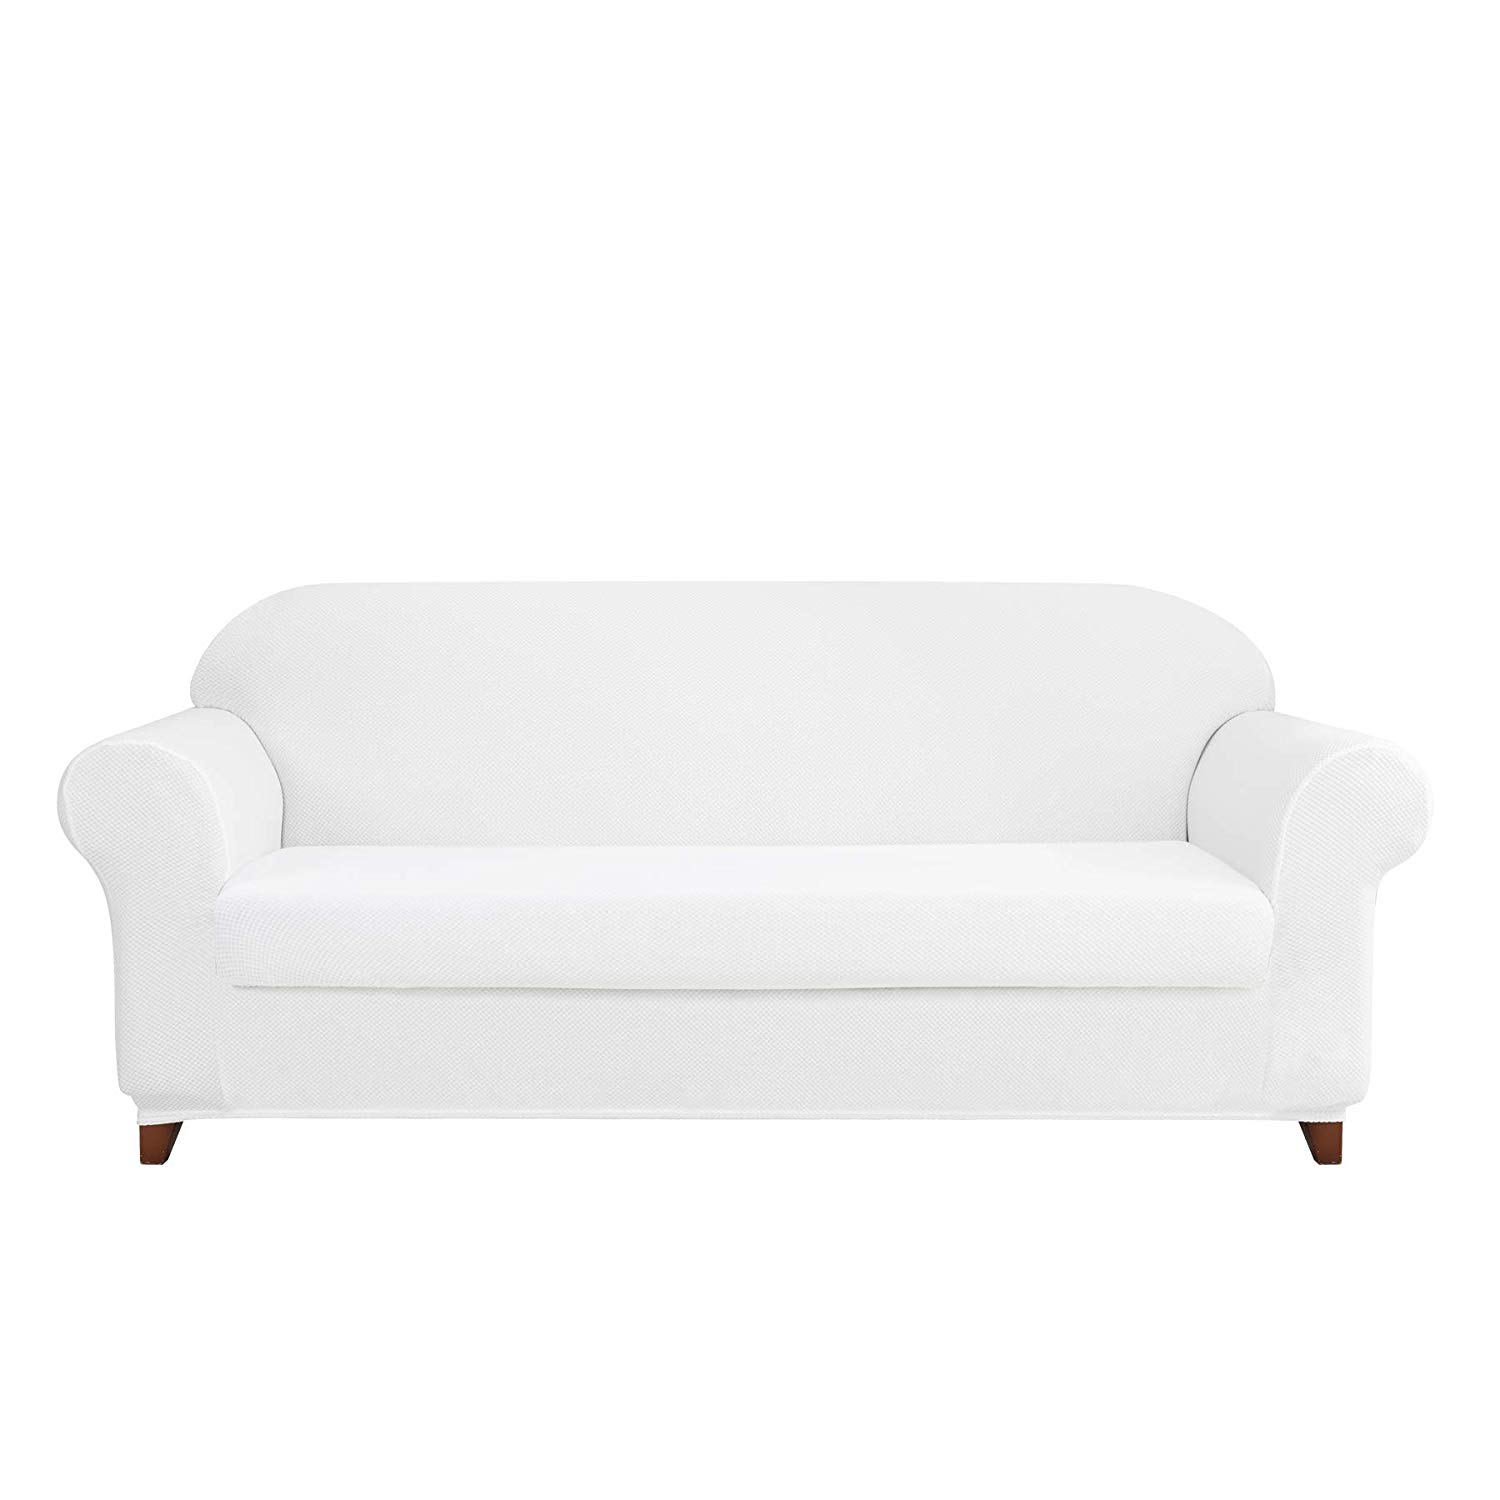 Sofa Slipcovers Top 10 Best Slipcover Sofas In 2019 Reviews Top Best Pro Review